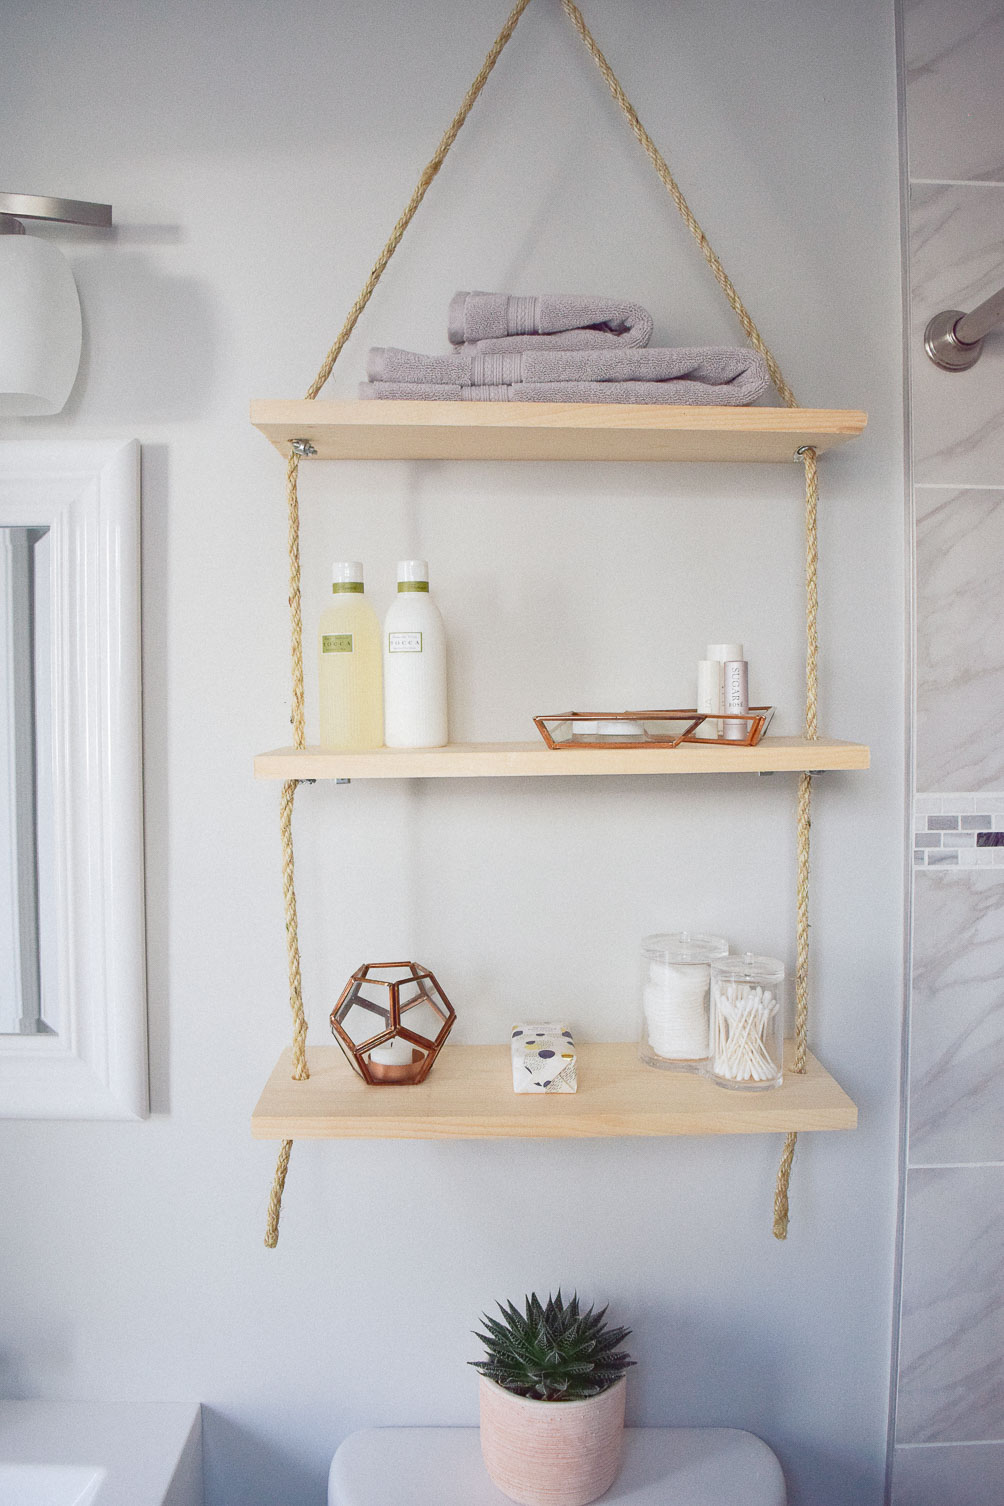 Fullsize Of Bathroom Hanging Shelf